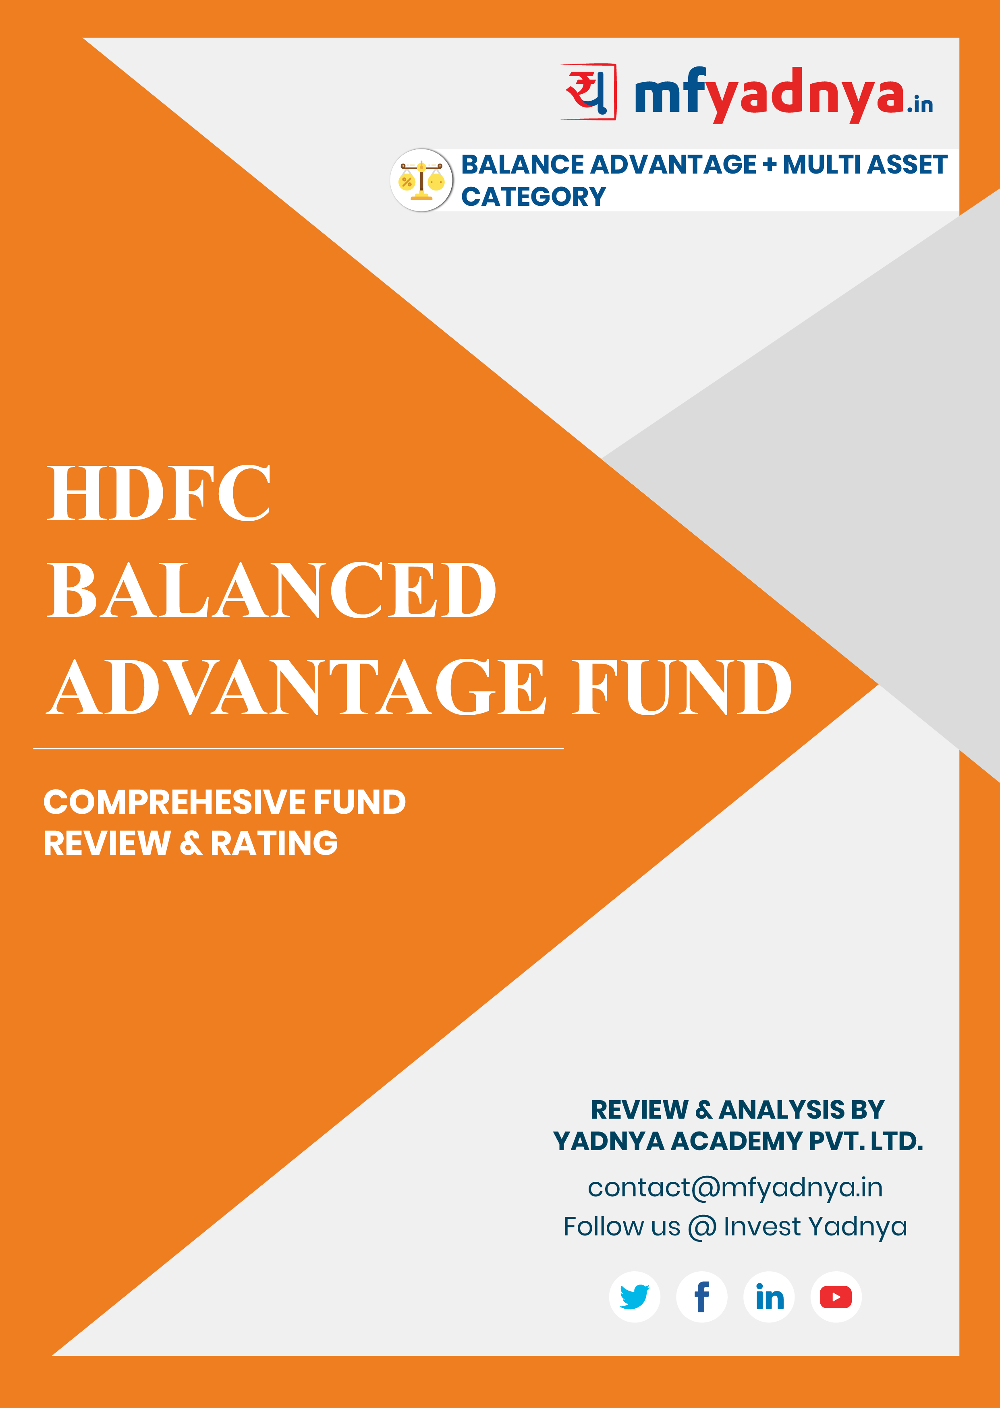 This e-book offers a comprehensive mutual fund review of HDFC Balanced Advantage Fund . It reviews the fund's return, ratio, allocation etc. ✔ Detailed Mutual Fund Analysis ✔ Latest Research Reports